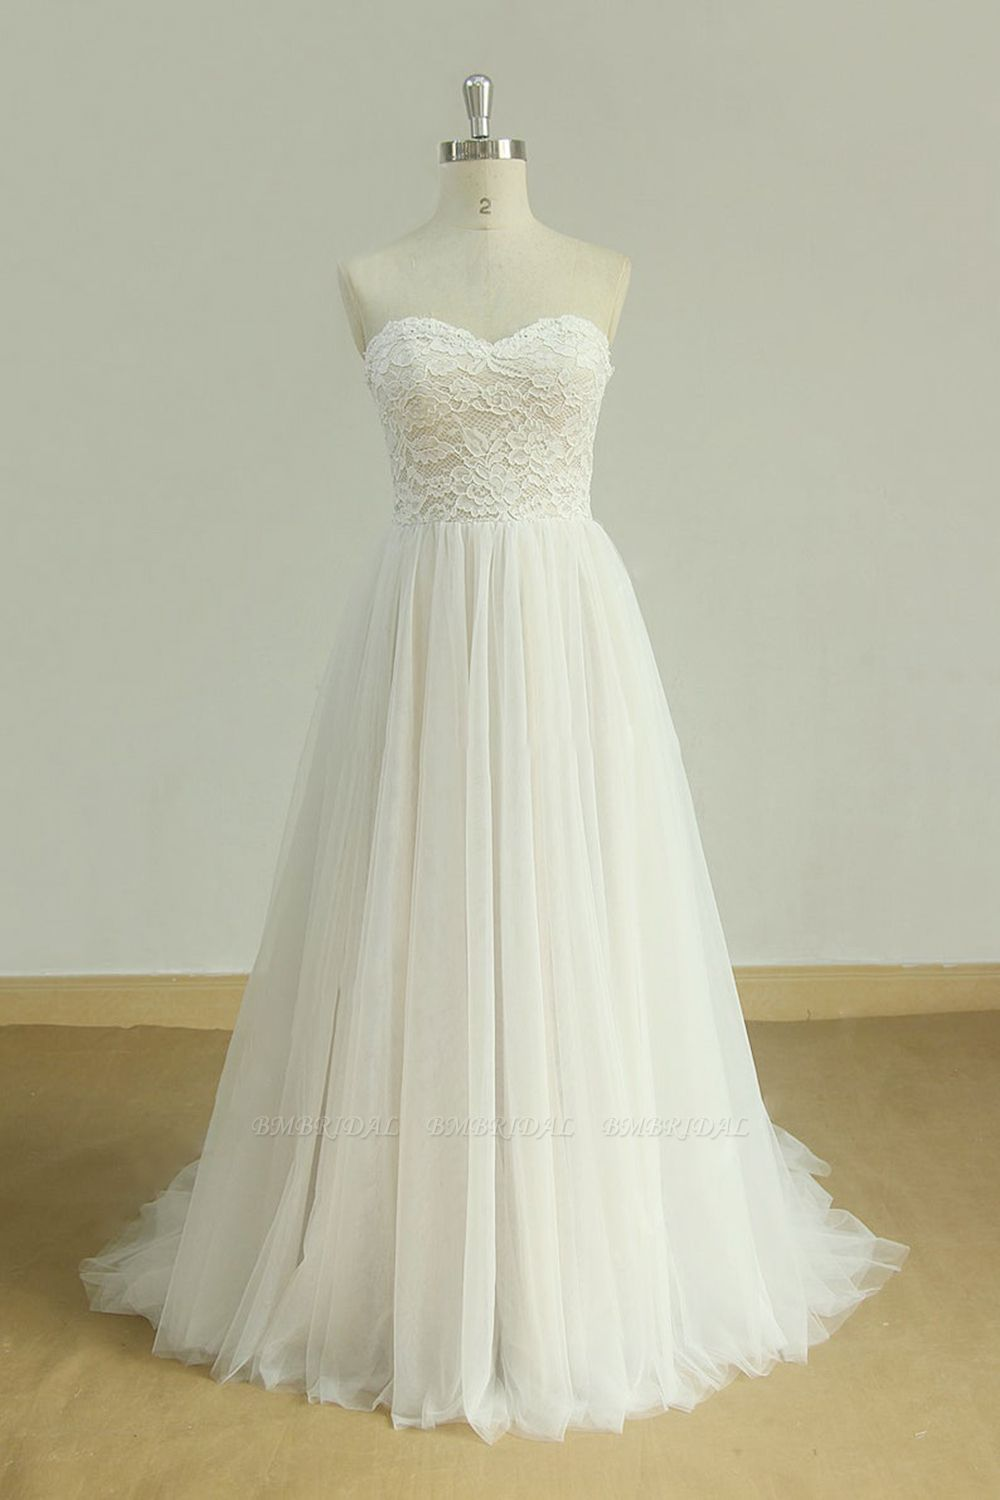 Sexy Sweetheart White Tulle Wedding Dress Lace A-line Ruffles Bridal Gowns On Sale